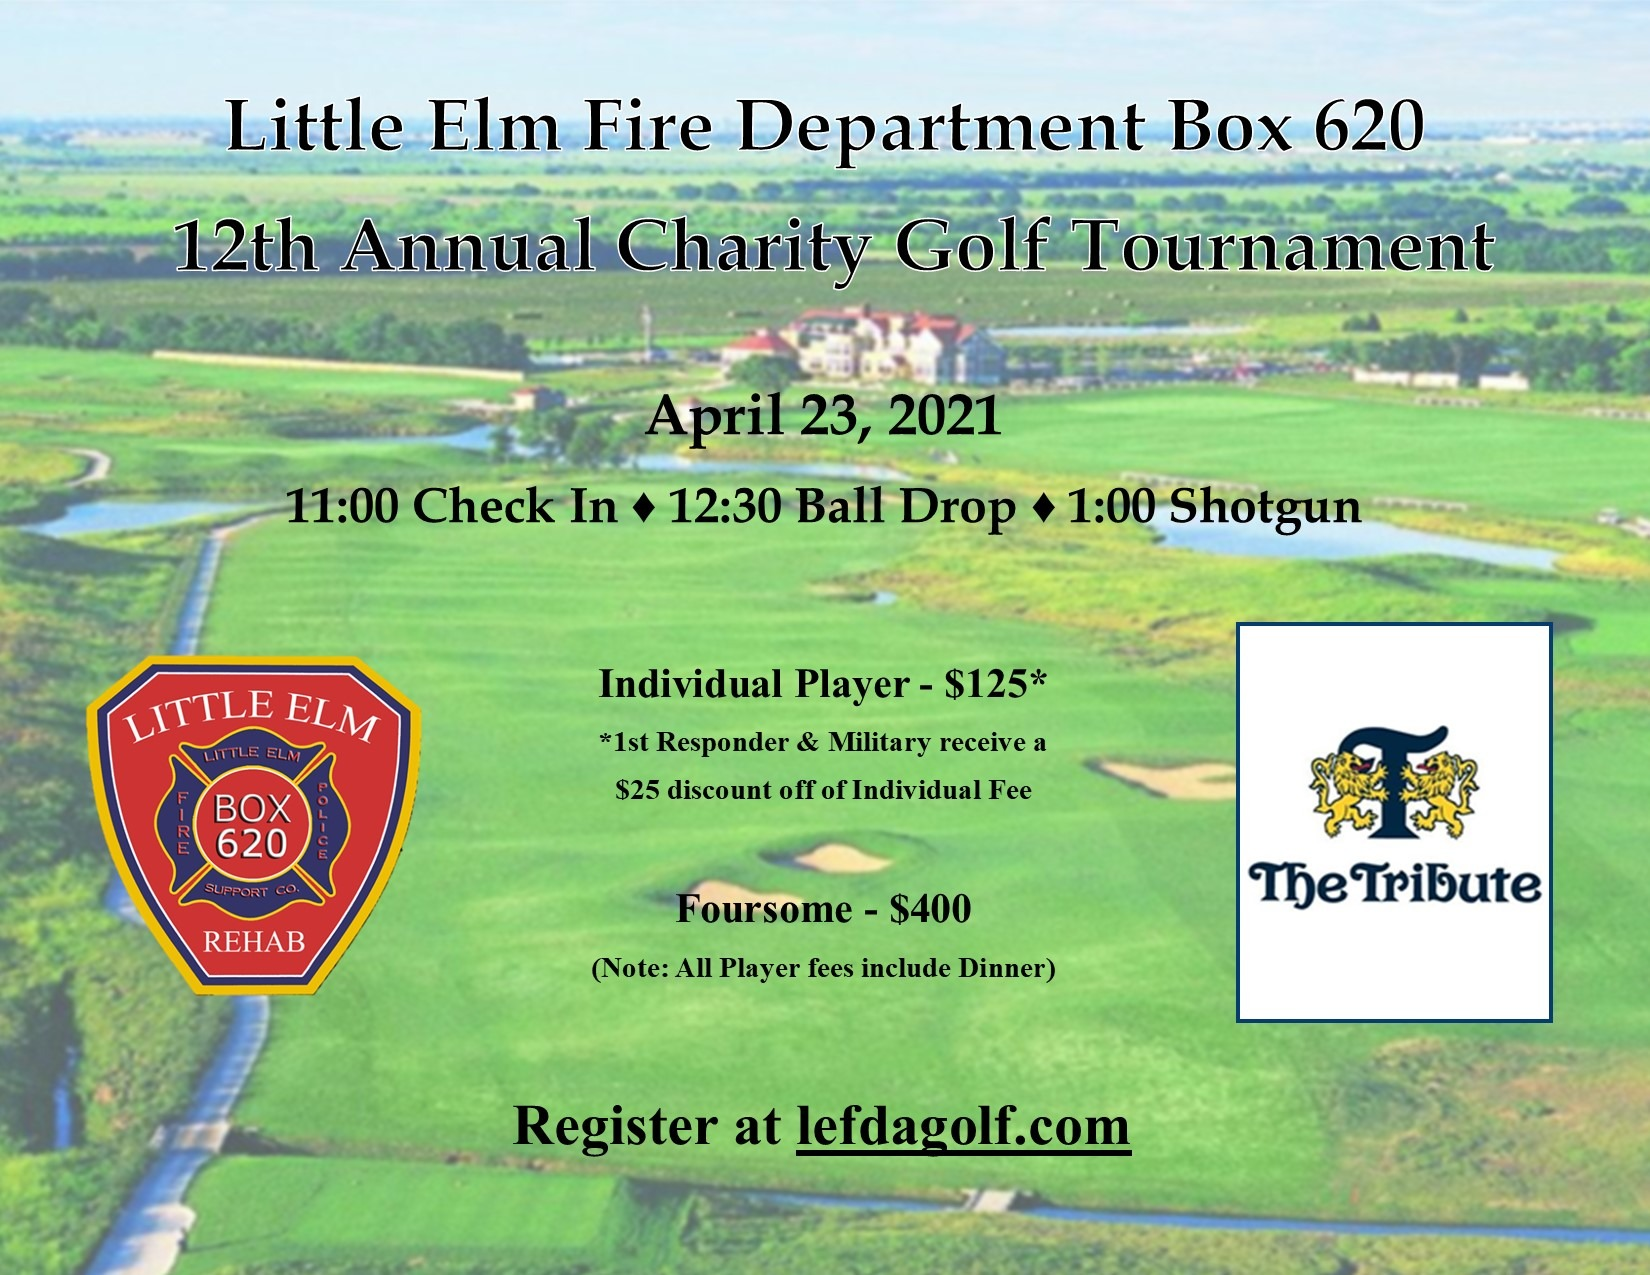 Little Elm Fire Department Auxiliary Announces Partnership with Little Elm Box 620 Support Co. to Host 12th Annual Charity Golf Tournament!